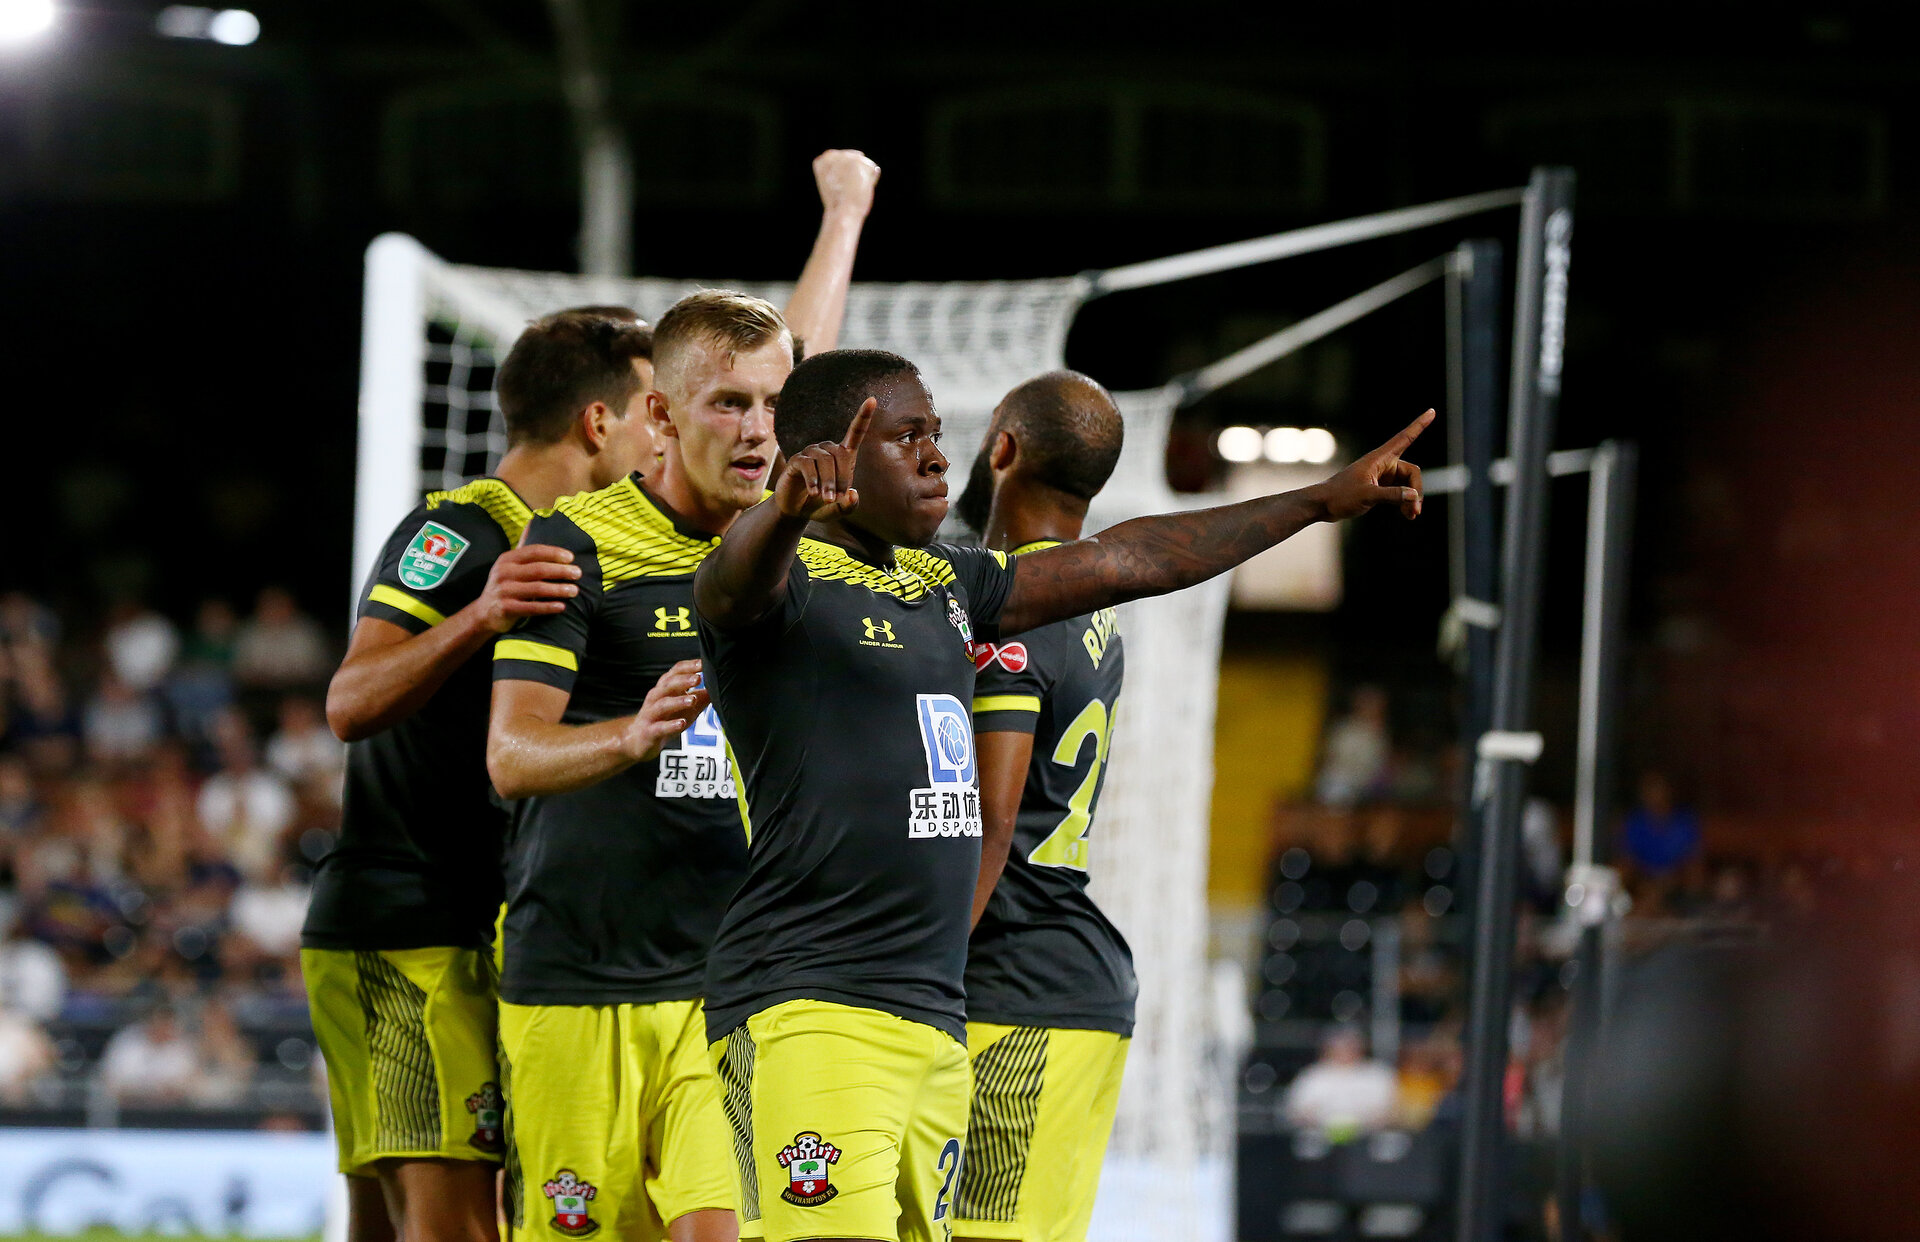 LONDON, ENGLAND - AUGUST 27: Michael Obafemi of Southampton celebrates after opening the scoring  during the Carabao Cup second round match between Fulham and Southampton FC at Craven Cottage on August 27, 2019 in London, England. (Photo by Matt Watson/Southampton FC via Getty Images)